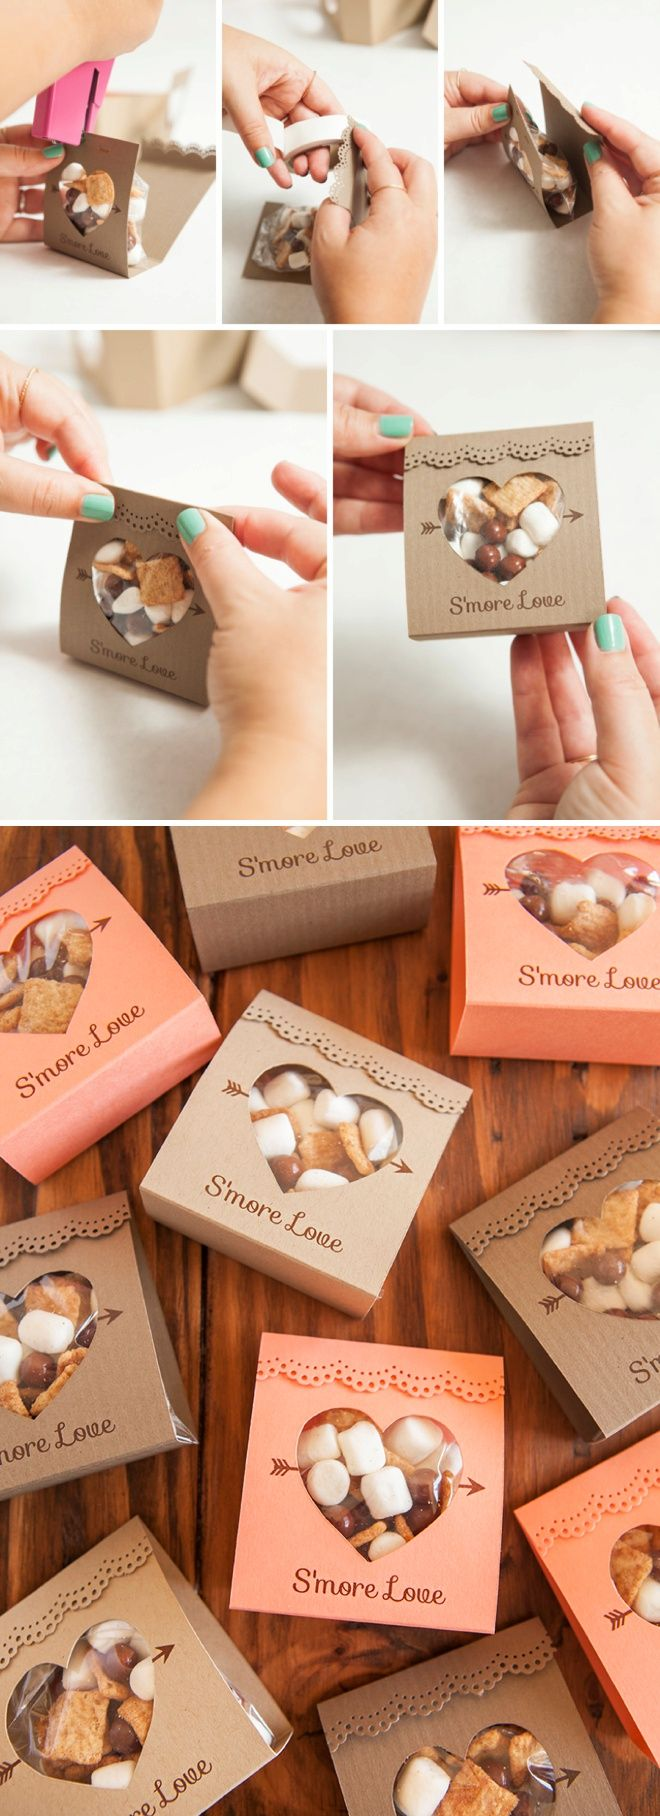 Adorable idea for su0027mores wedding favors